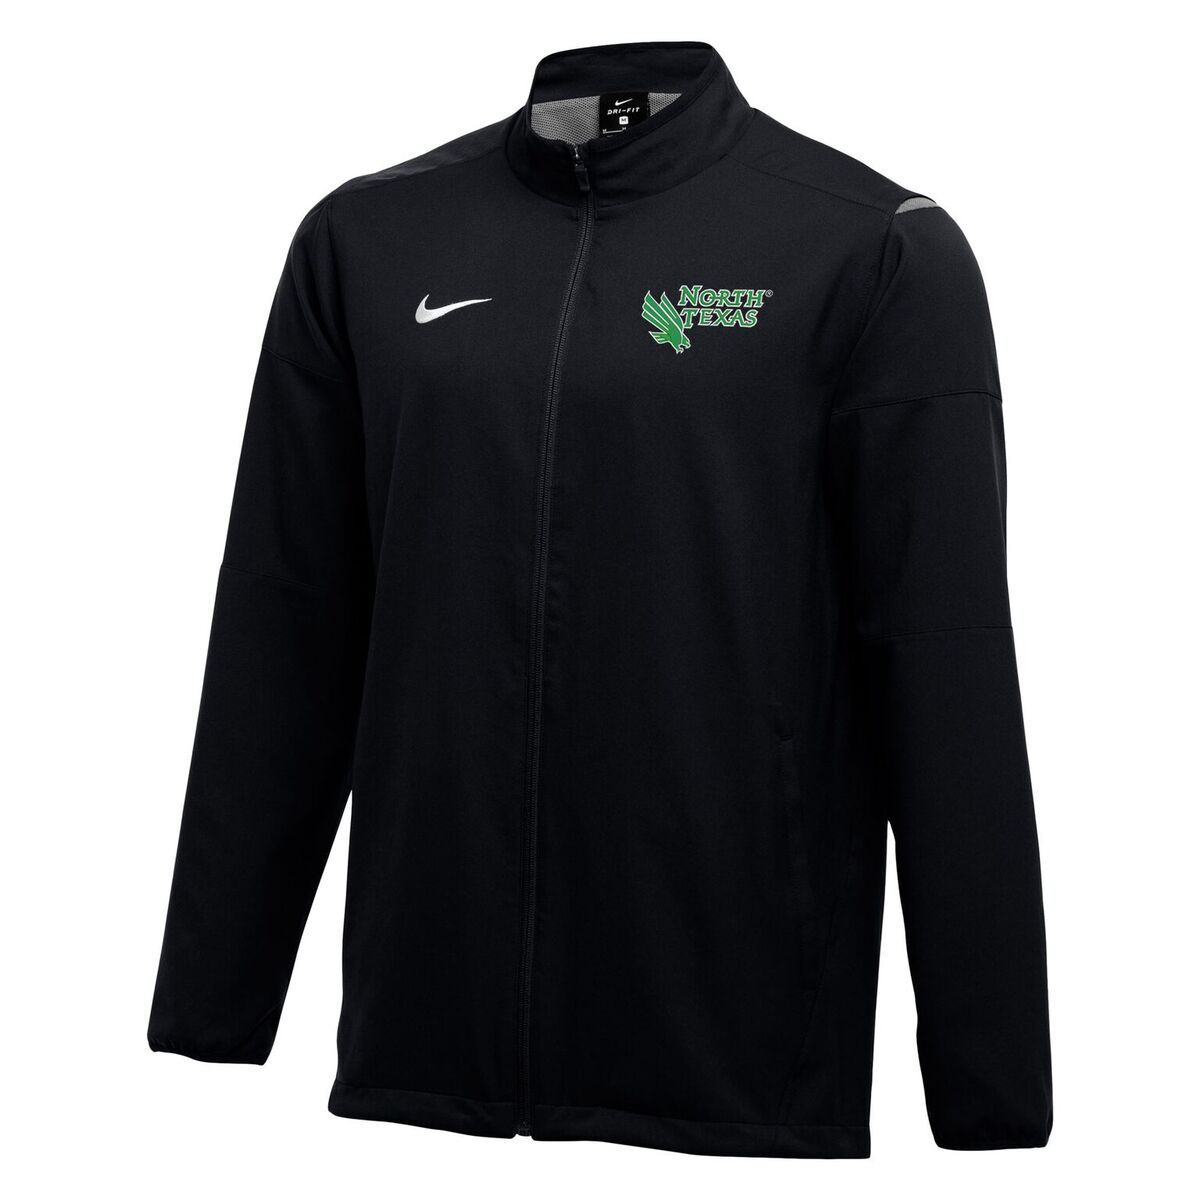 2018 SIDELINE TRAVEL JACKET